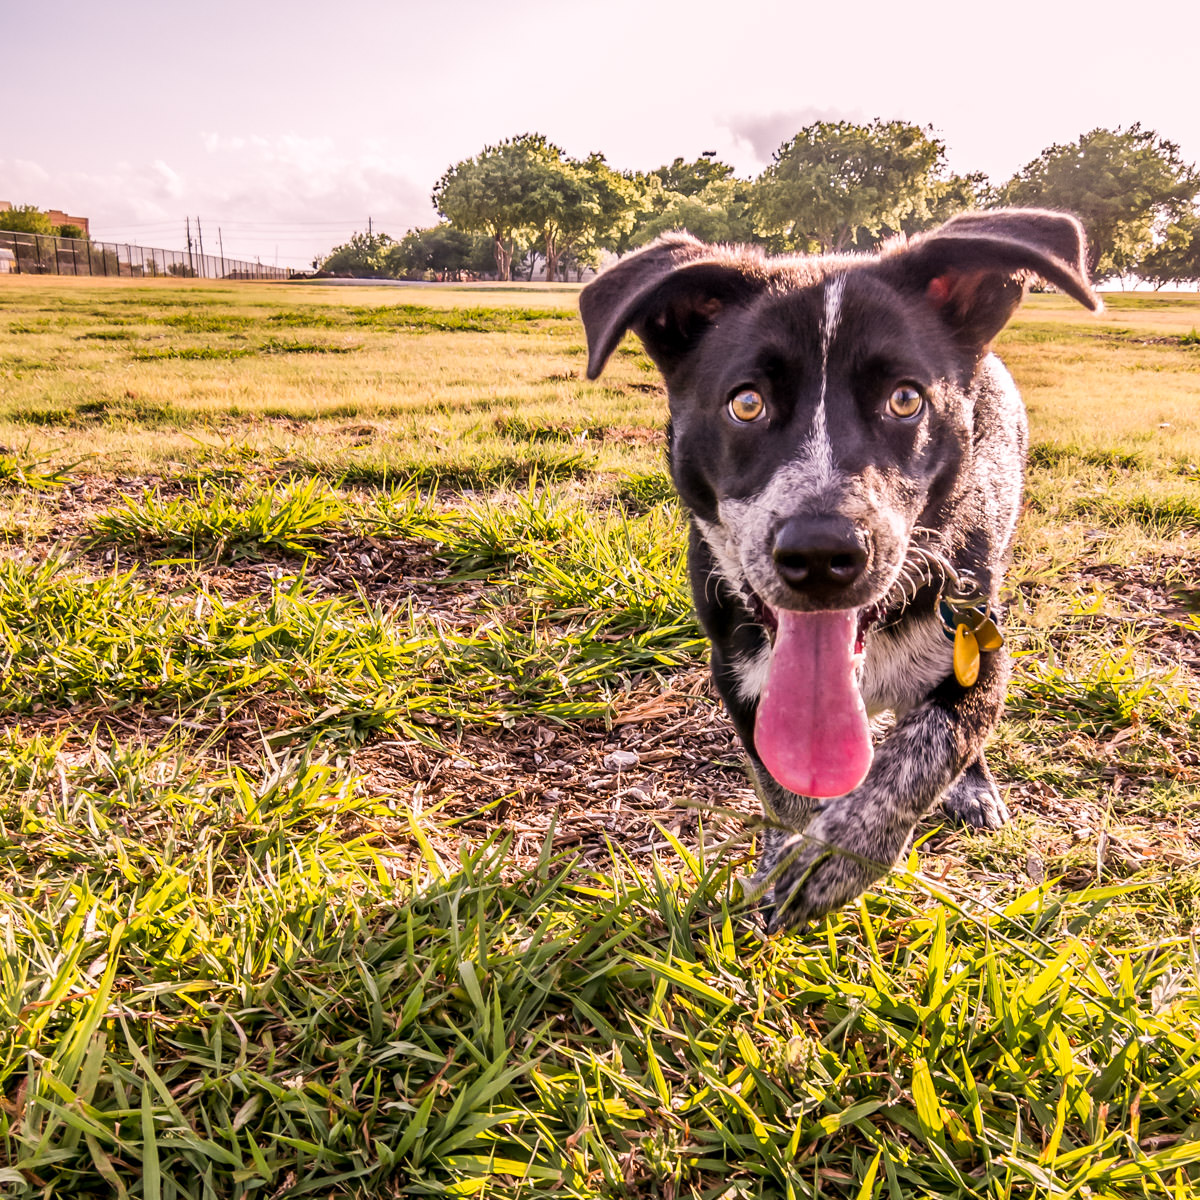 Our dog, Winston, at Addison Circle Park, Addison, Texas.